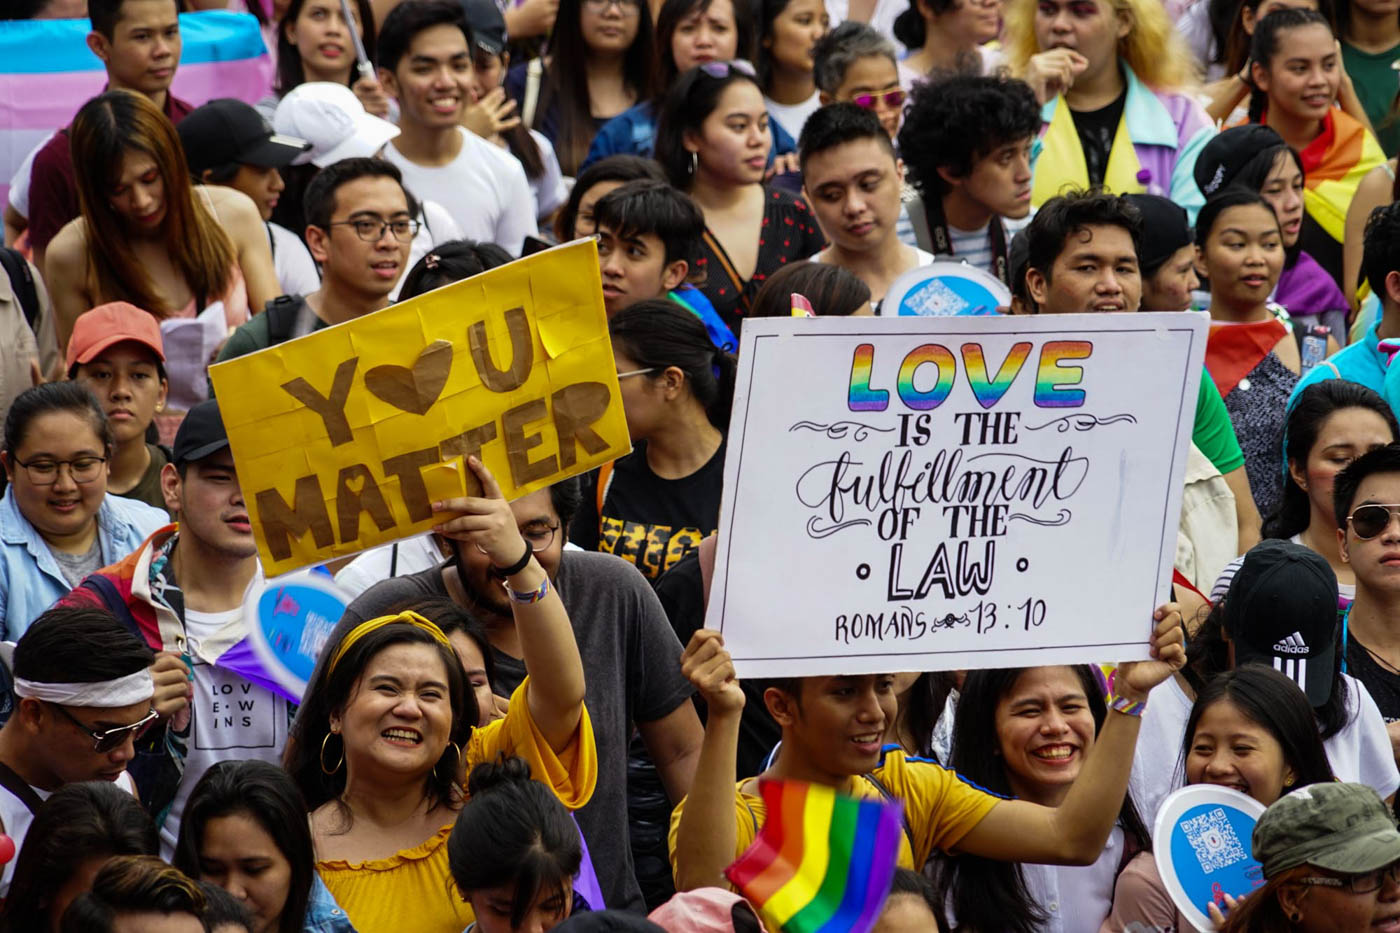 SIGN LANGUAGE. The LGBT community and its allies spread messages of love through signs at Metro Manila Pride 2018. File photo by Jire Carreon/Rappler